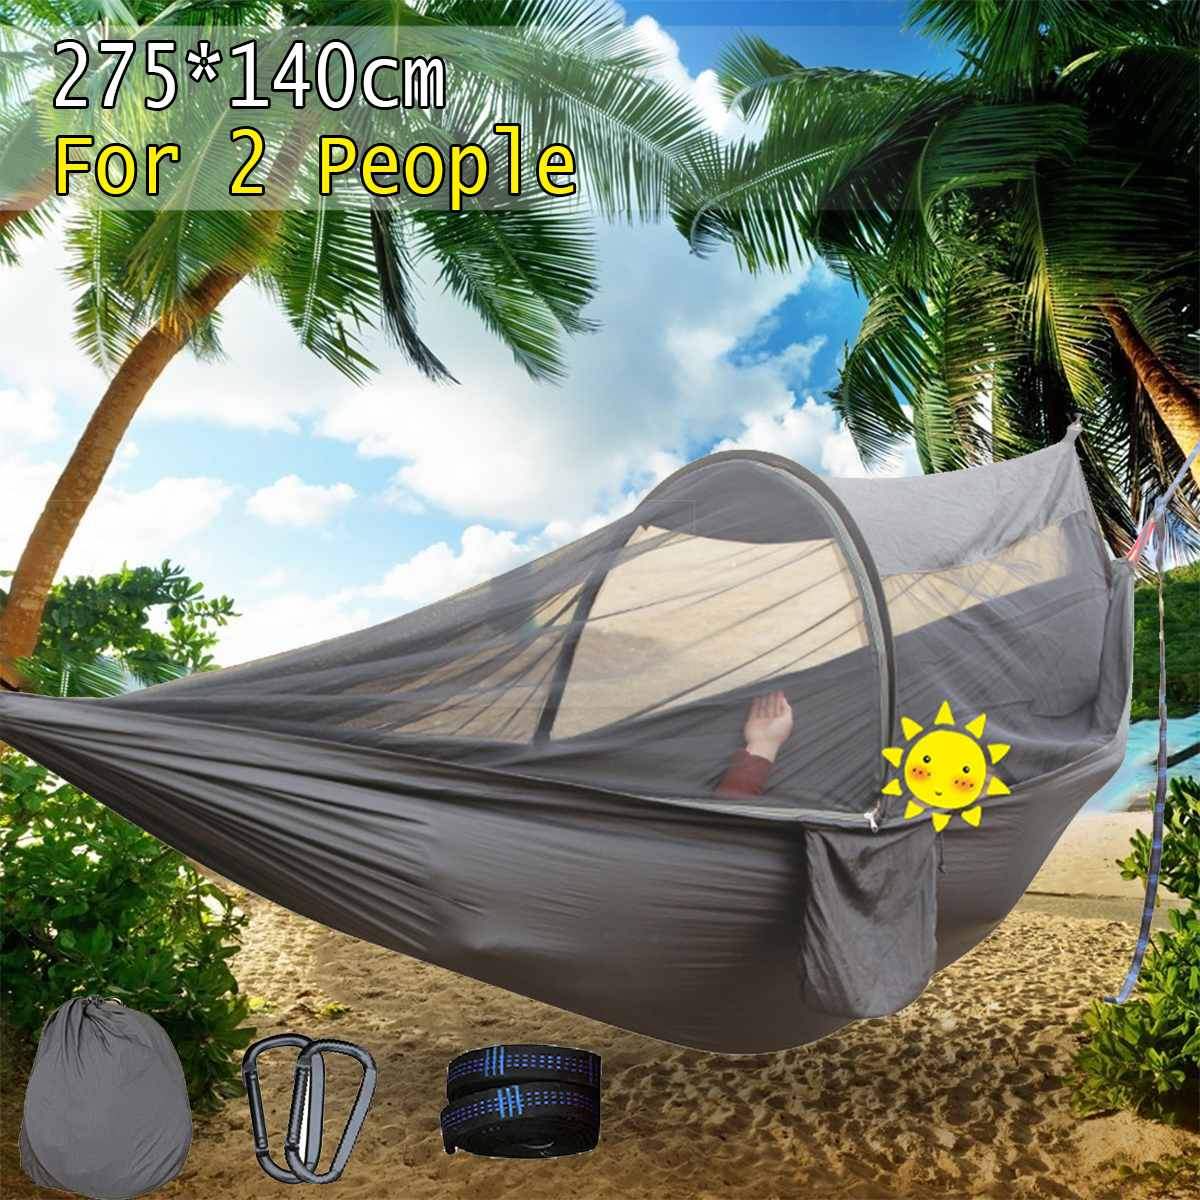 Portable Outdoor Hammock with Mosquito net 1-2 Person Travel Camping Hammock Hunting Sleep Bed Hanging Chair ParachutePortable Outdoor Hammock with Mosquito net 1-2 Person Travel Camping Hammock Hunting Sleep Bed Hanging Chair Parachute